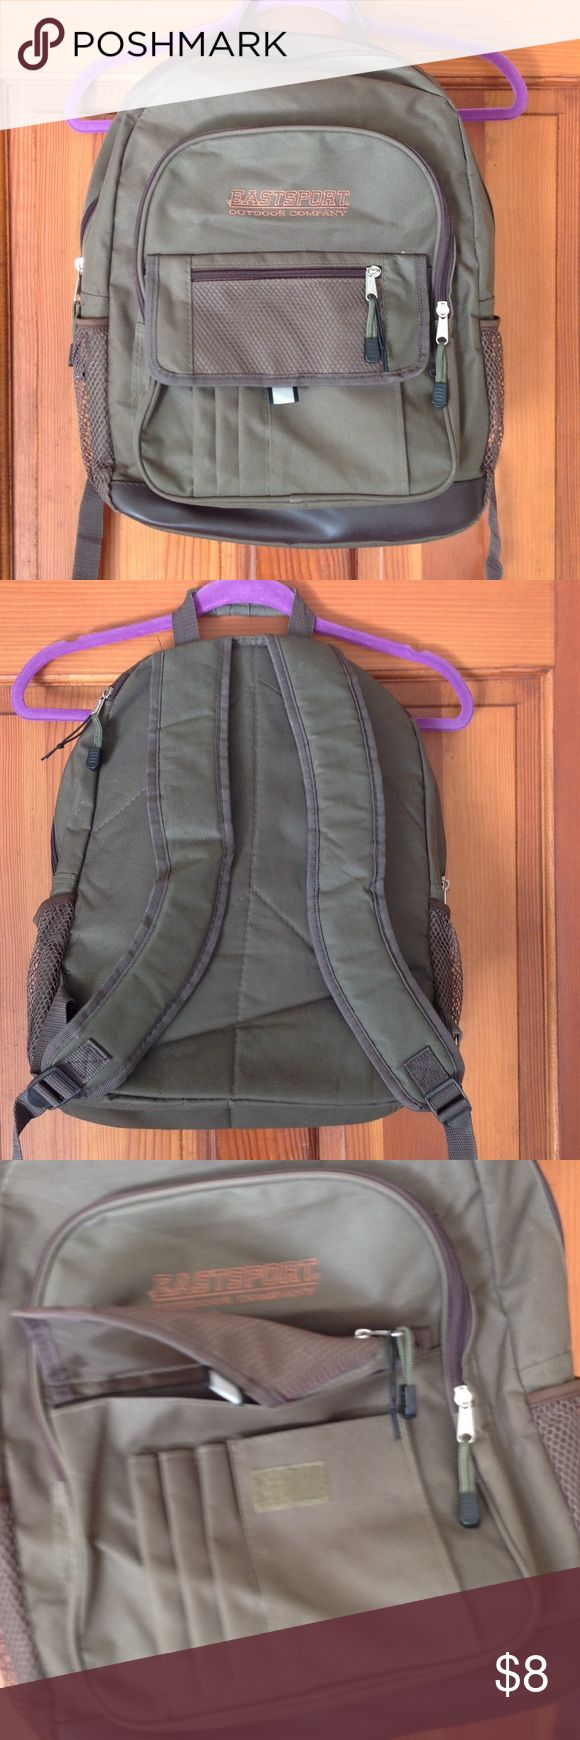 EASTSPORT backpack. Army green backpack with side pockets and four zipper areas. In like new condition! Eastsport Bags Backpacks